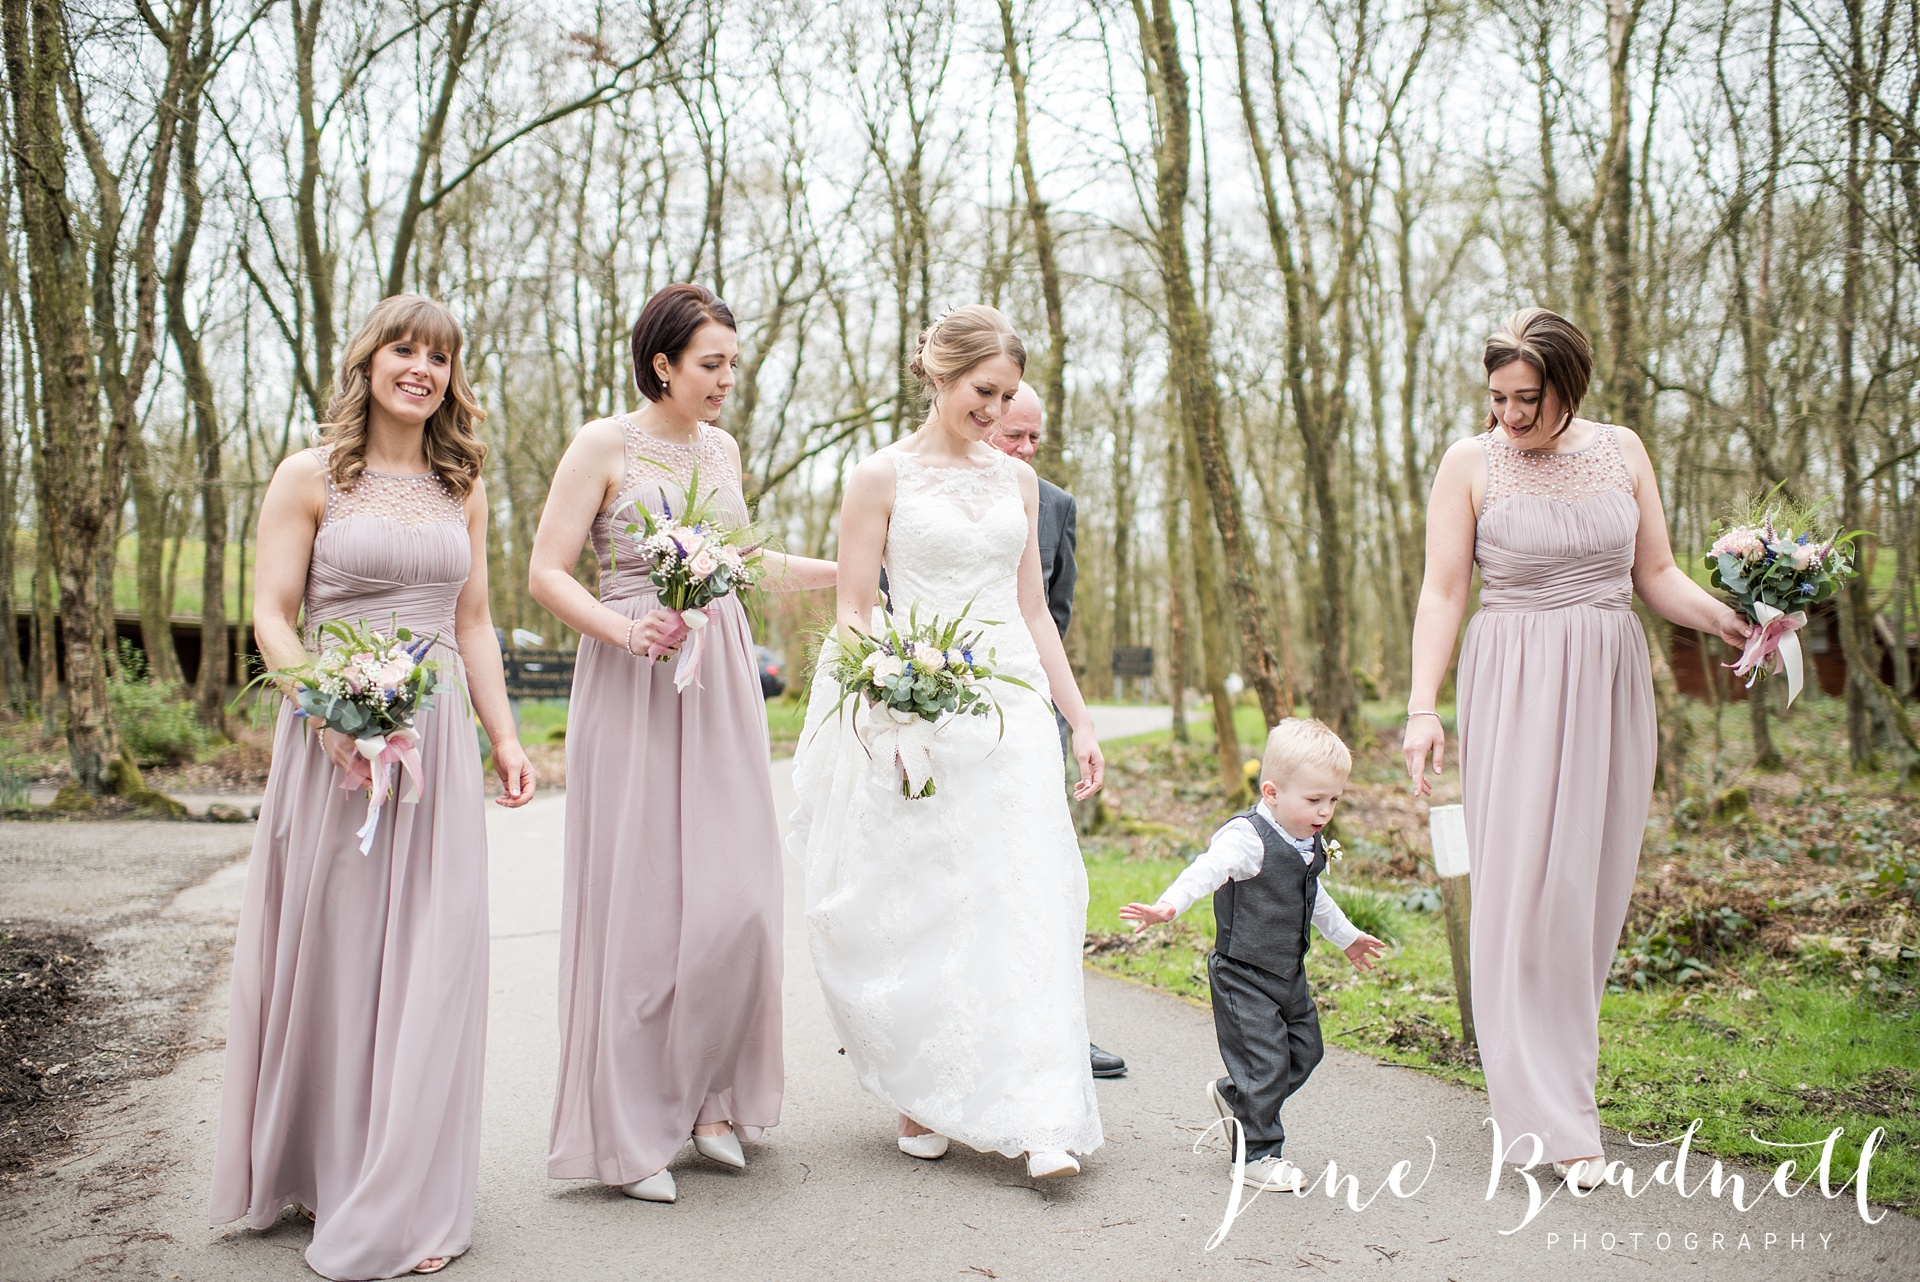 Otley Chevin Lodge wedding photography by Jane Beadnell Photography Leeds_0036